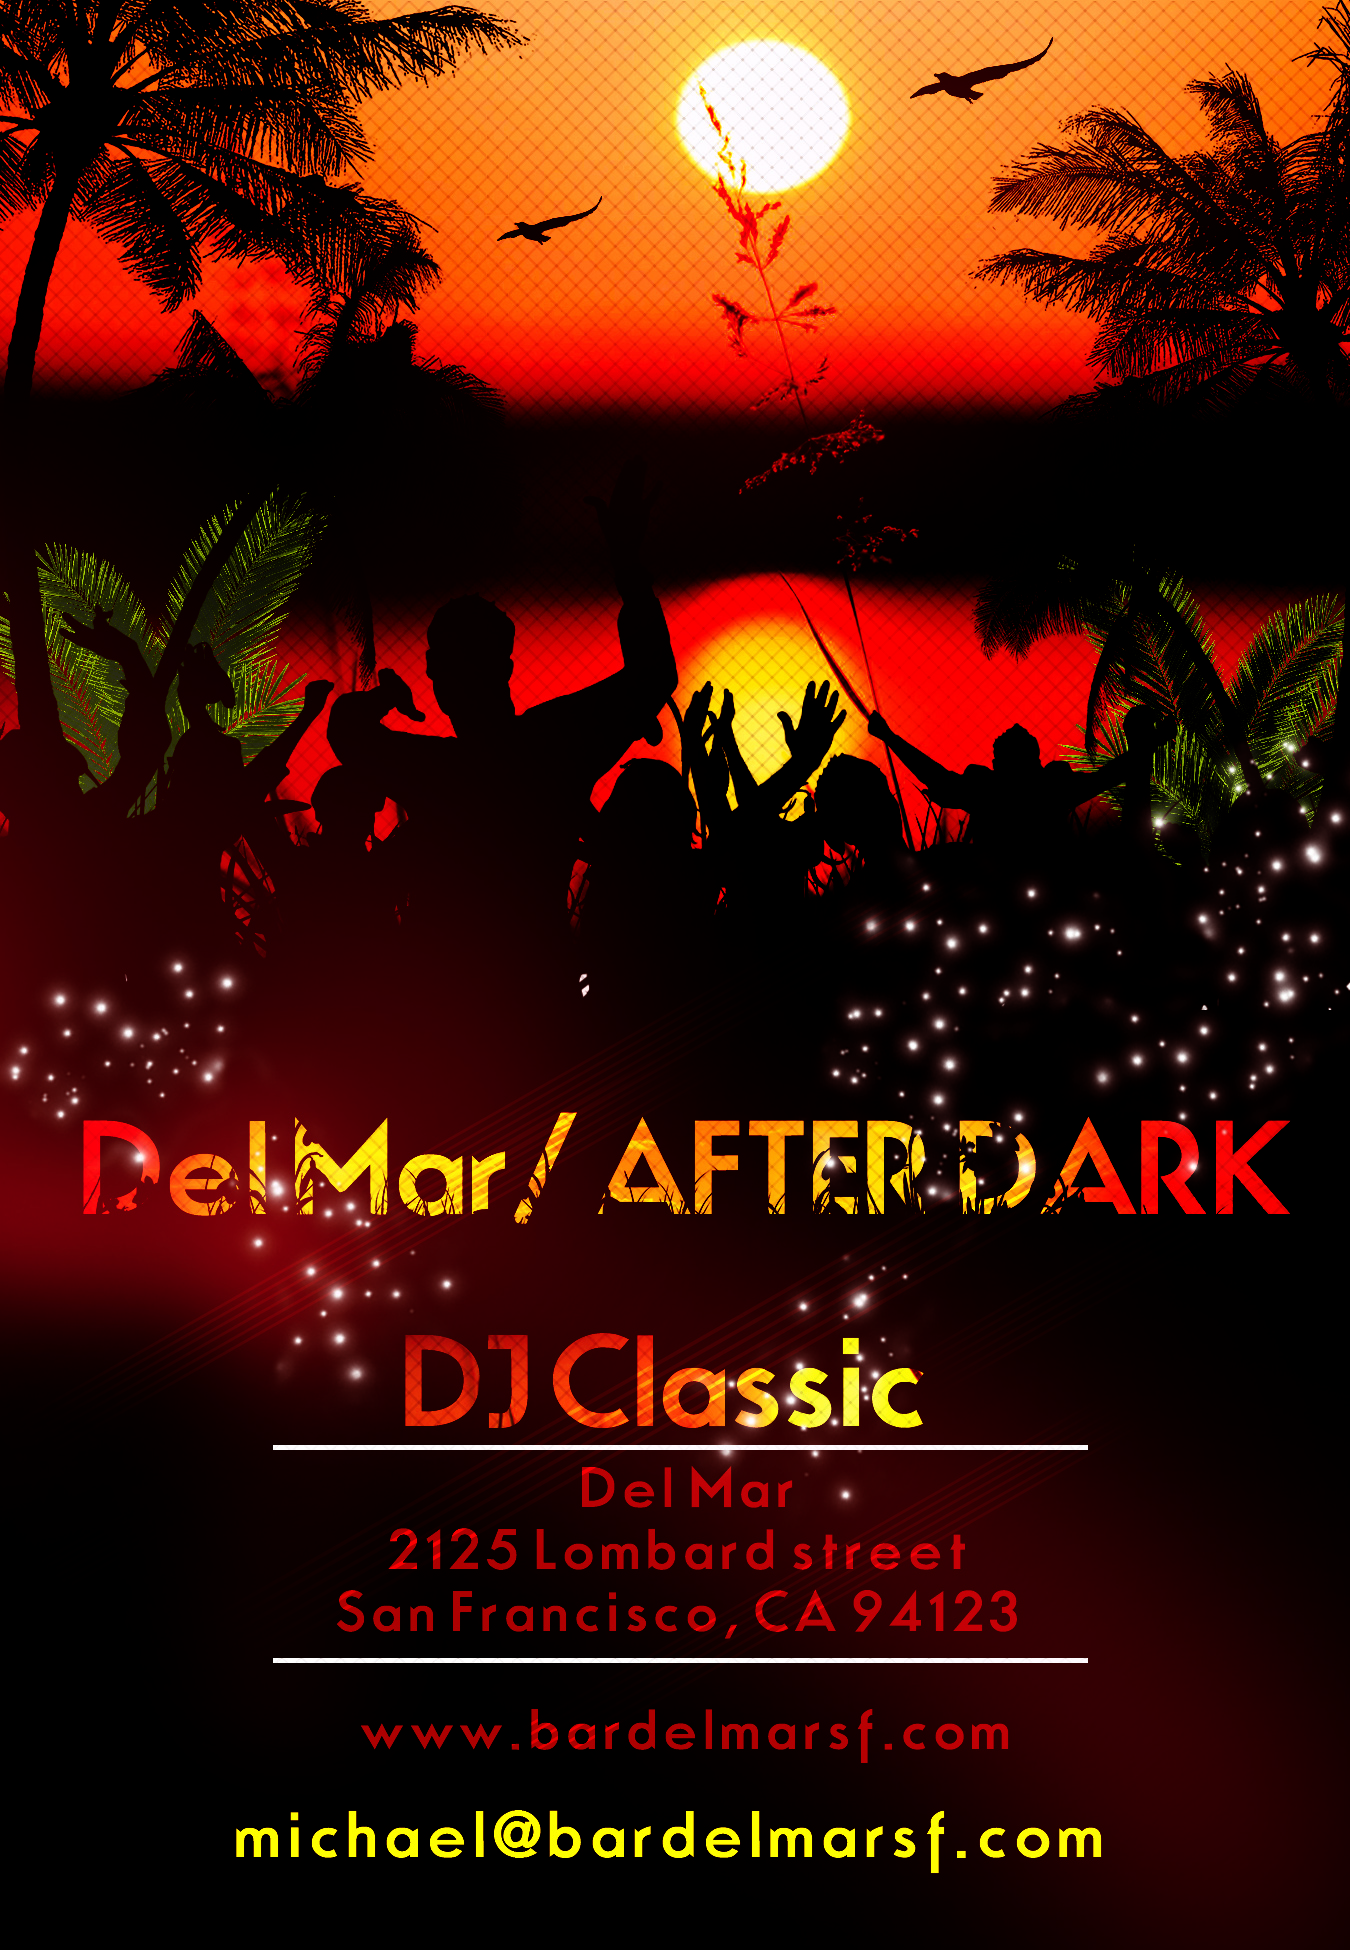 Del Mar After Dark flyer DJ Classic.jpg